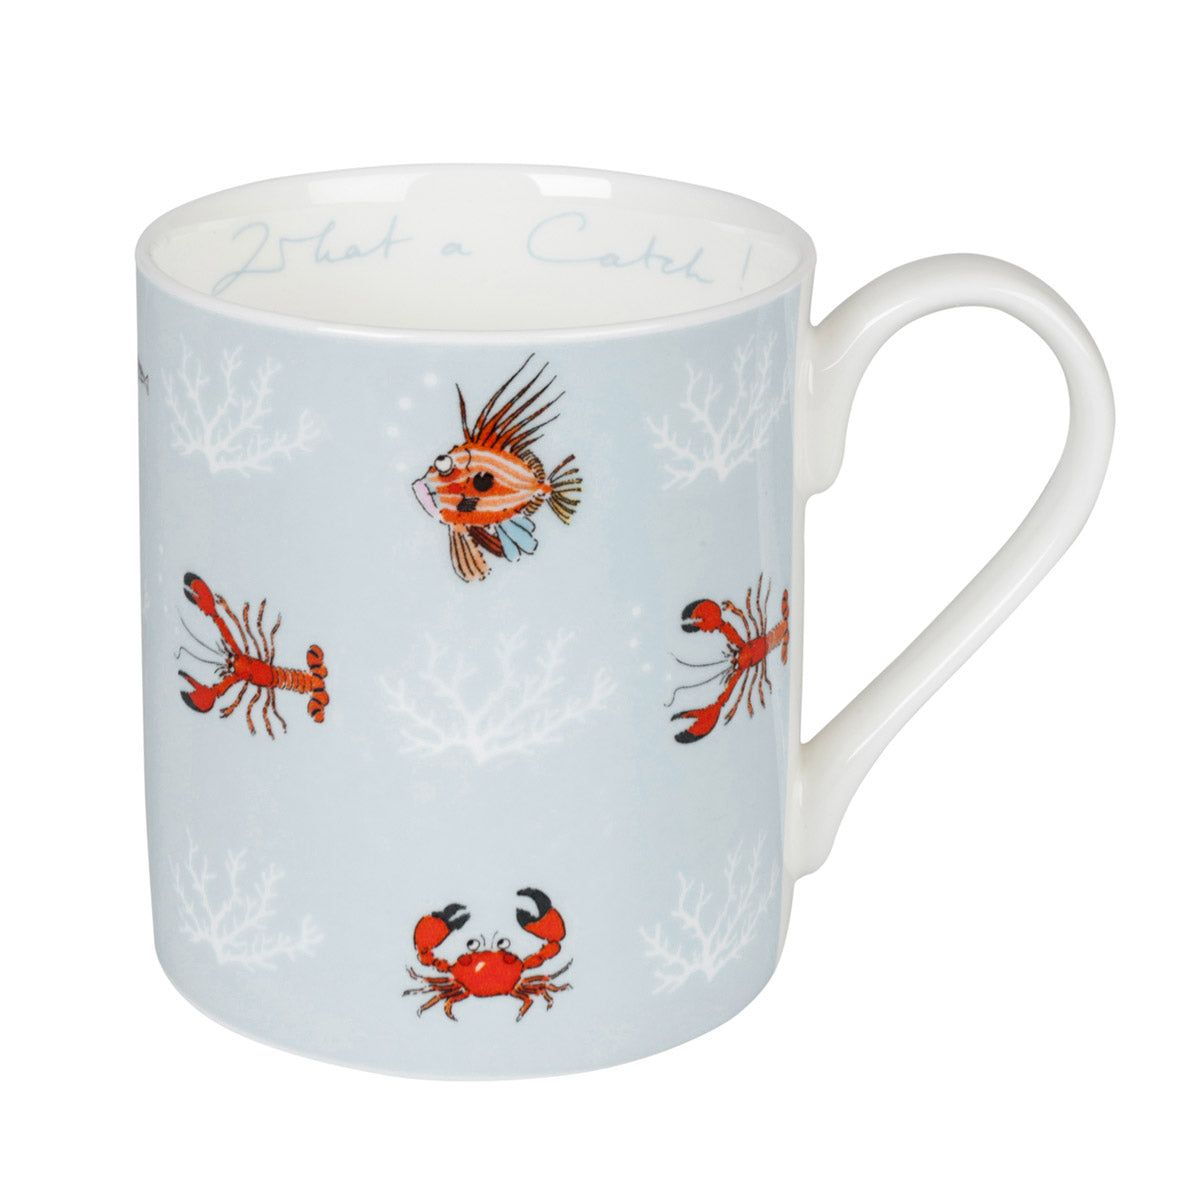 What a Catch! Mug - Coloured